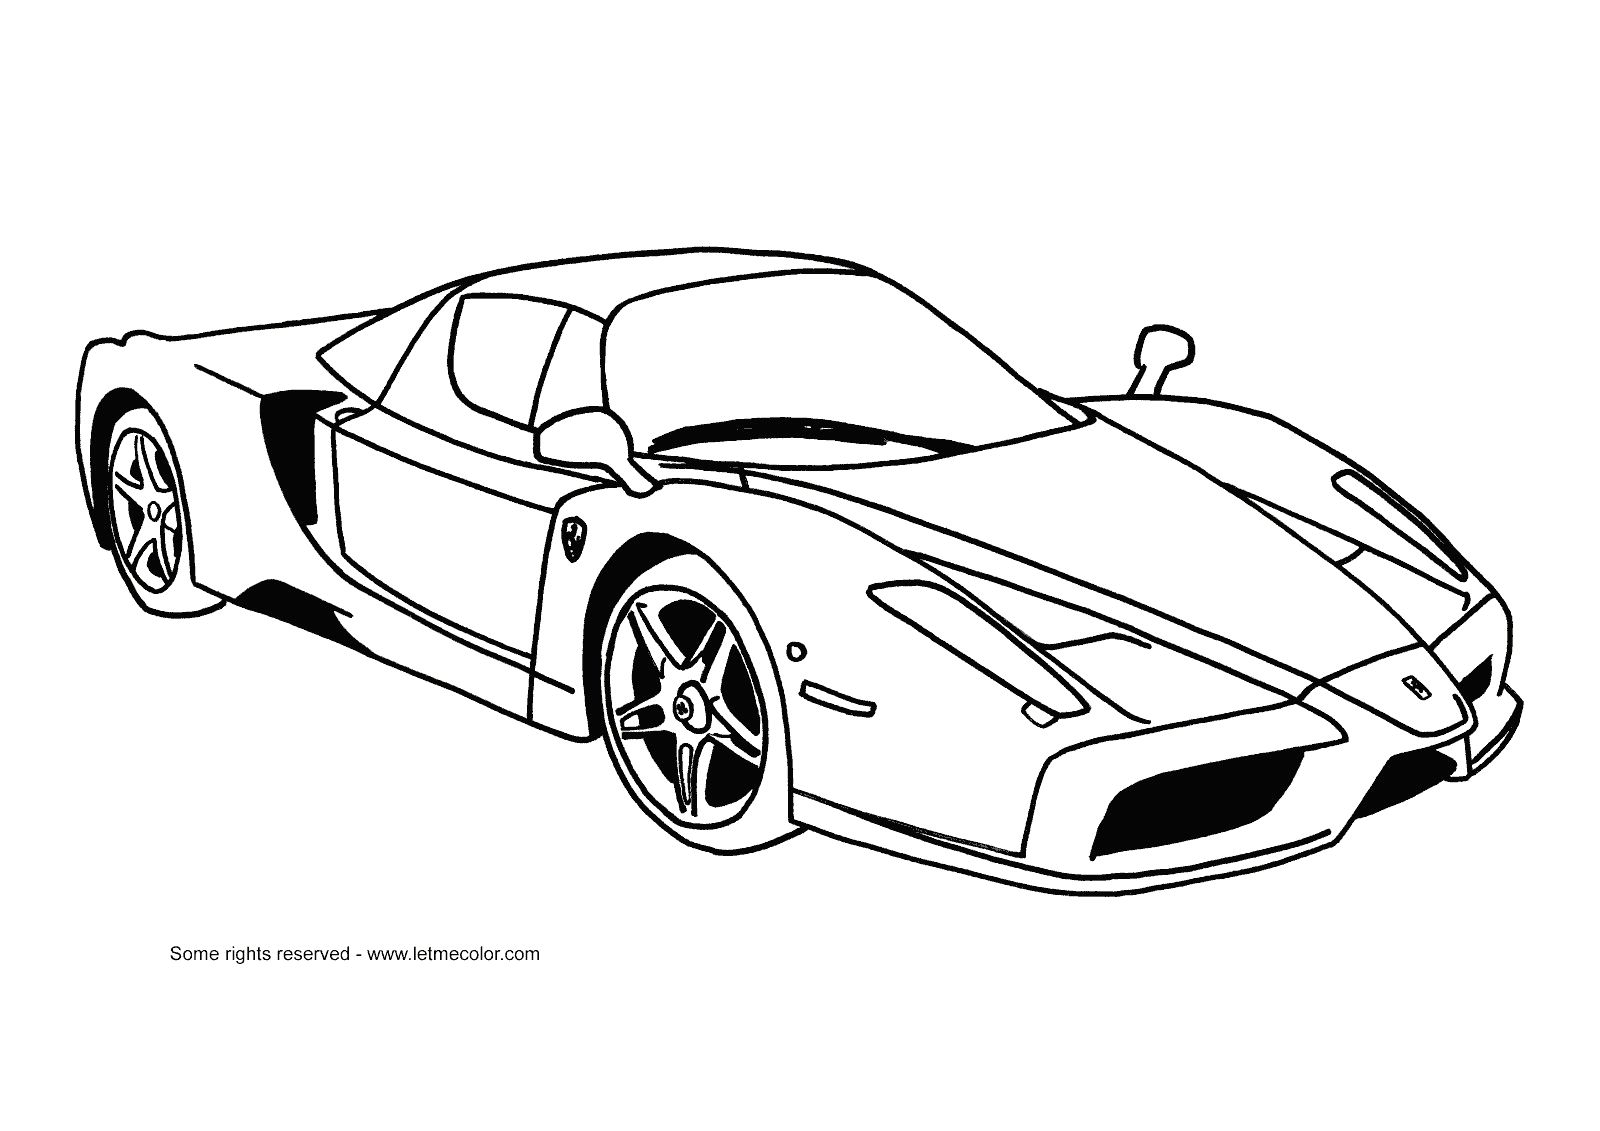 FERRARI coloring pages-22 ITALY  Race car coloring pages, Cars